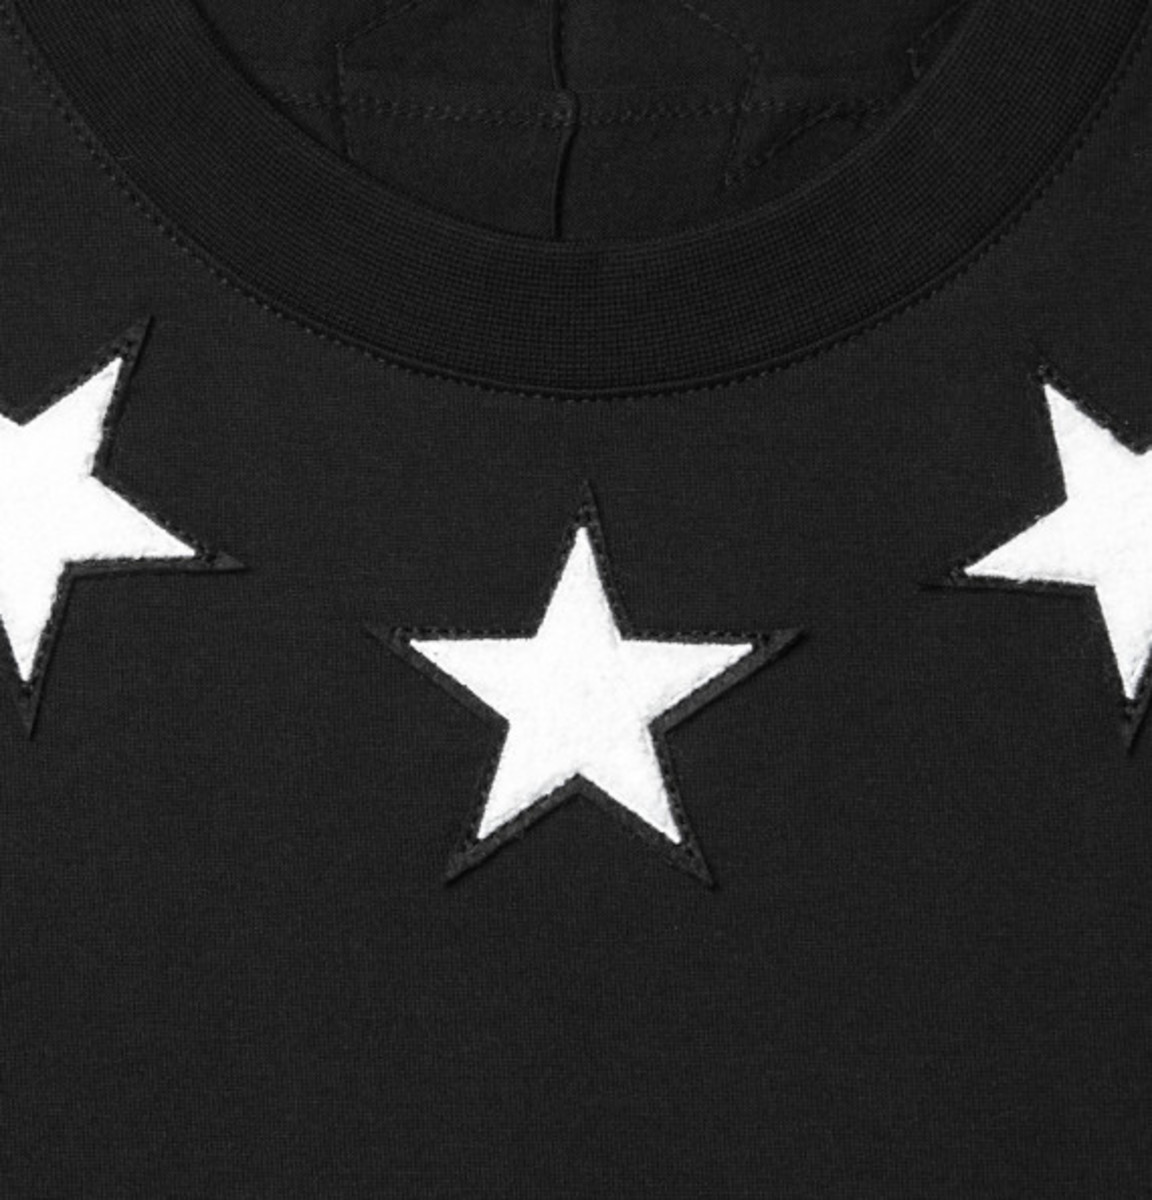 givenchy-cuban-fit-embroidered-star-tee-05